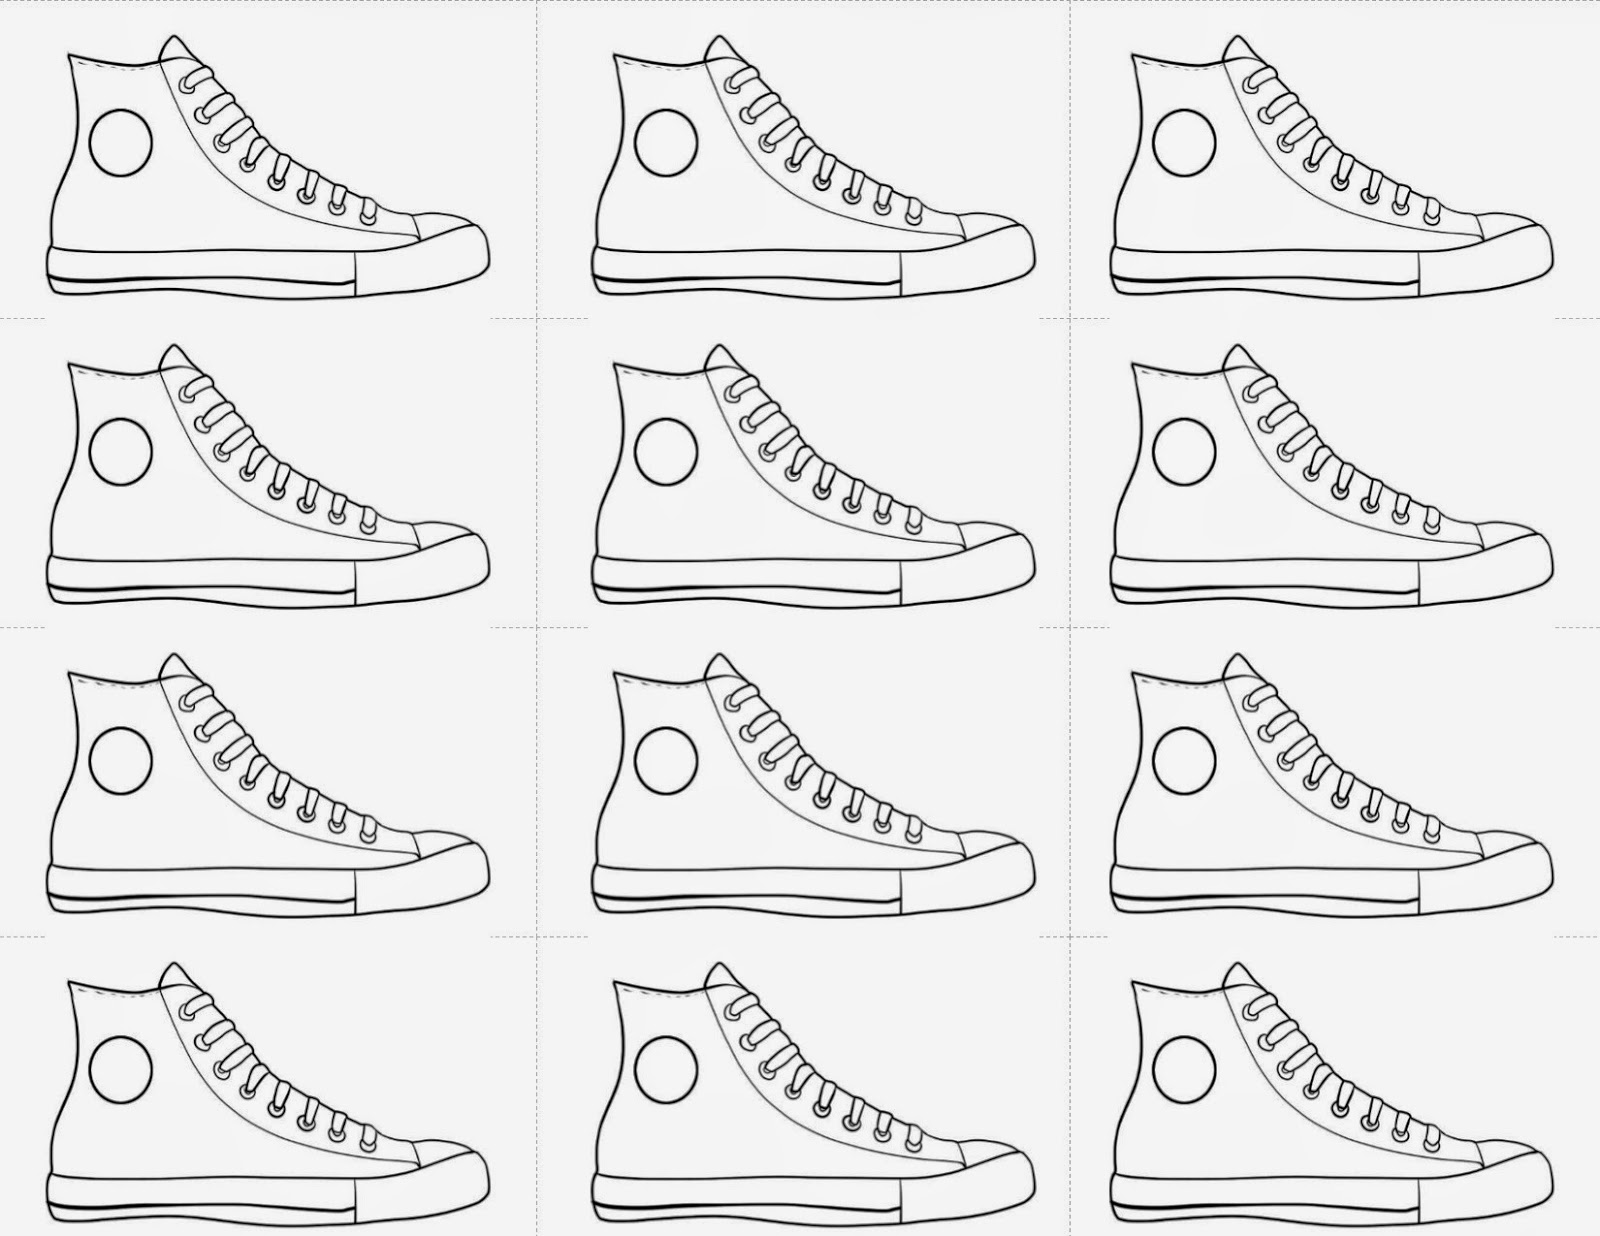 Dawntroversial Converse Ation Starter Design Your Own Sketch Coloring Page